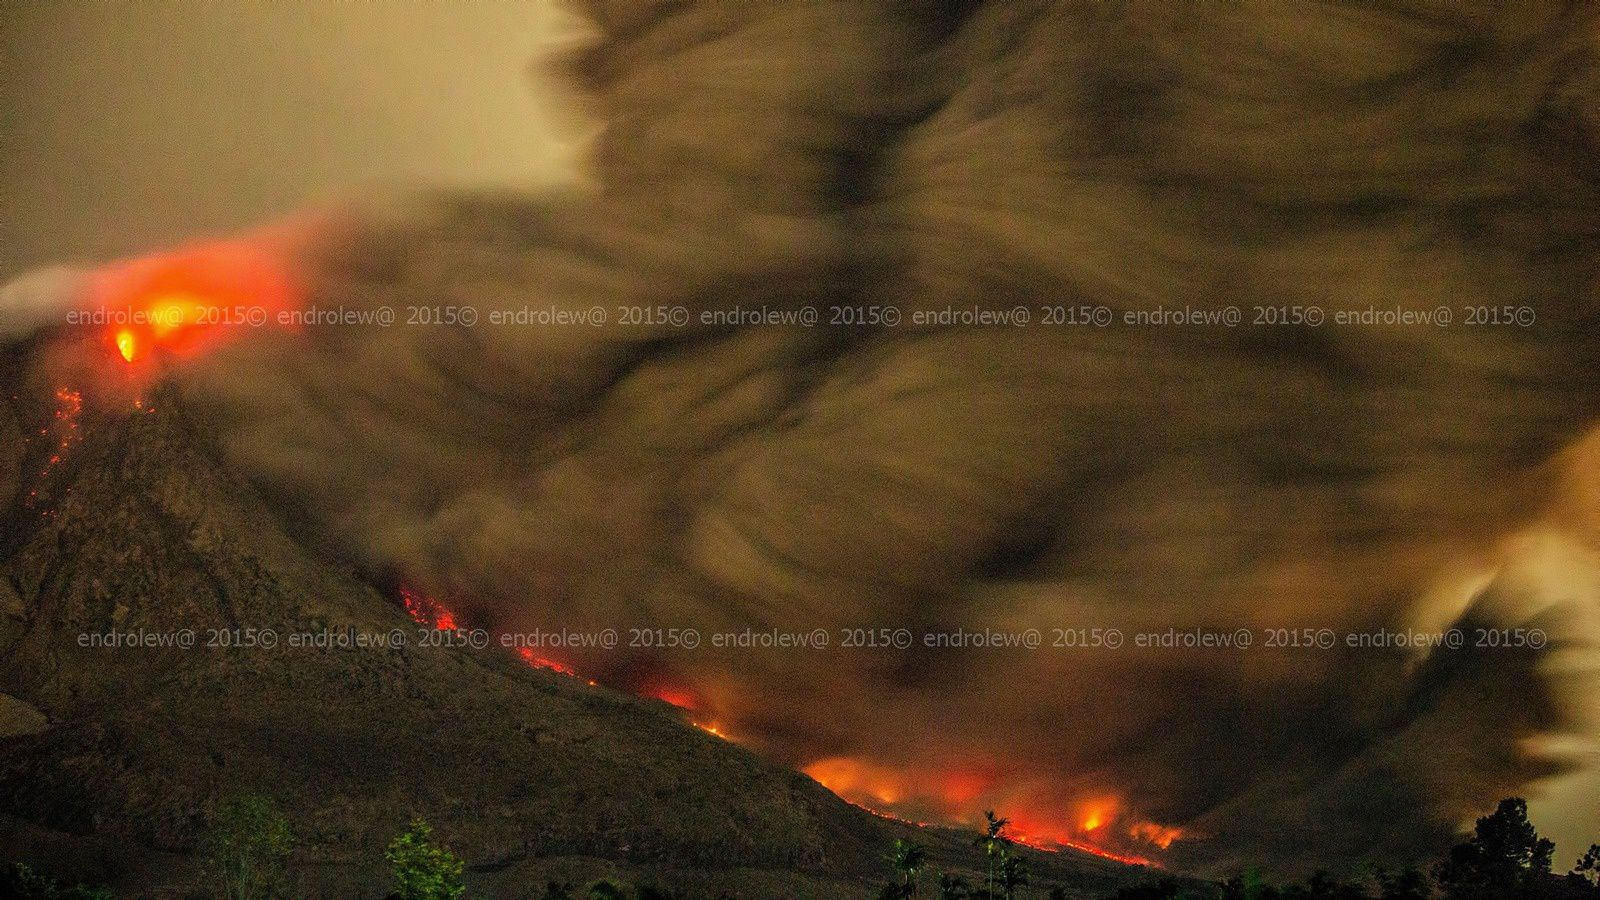 Sinabung - coulée pyroclastique du 22.06.2015 / 23h06 - photo endrolew@